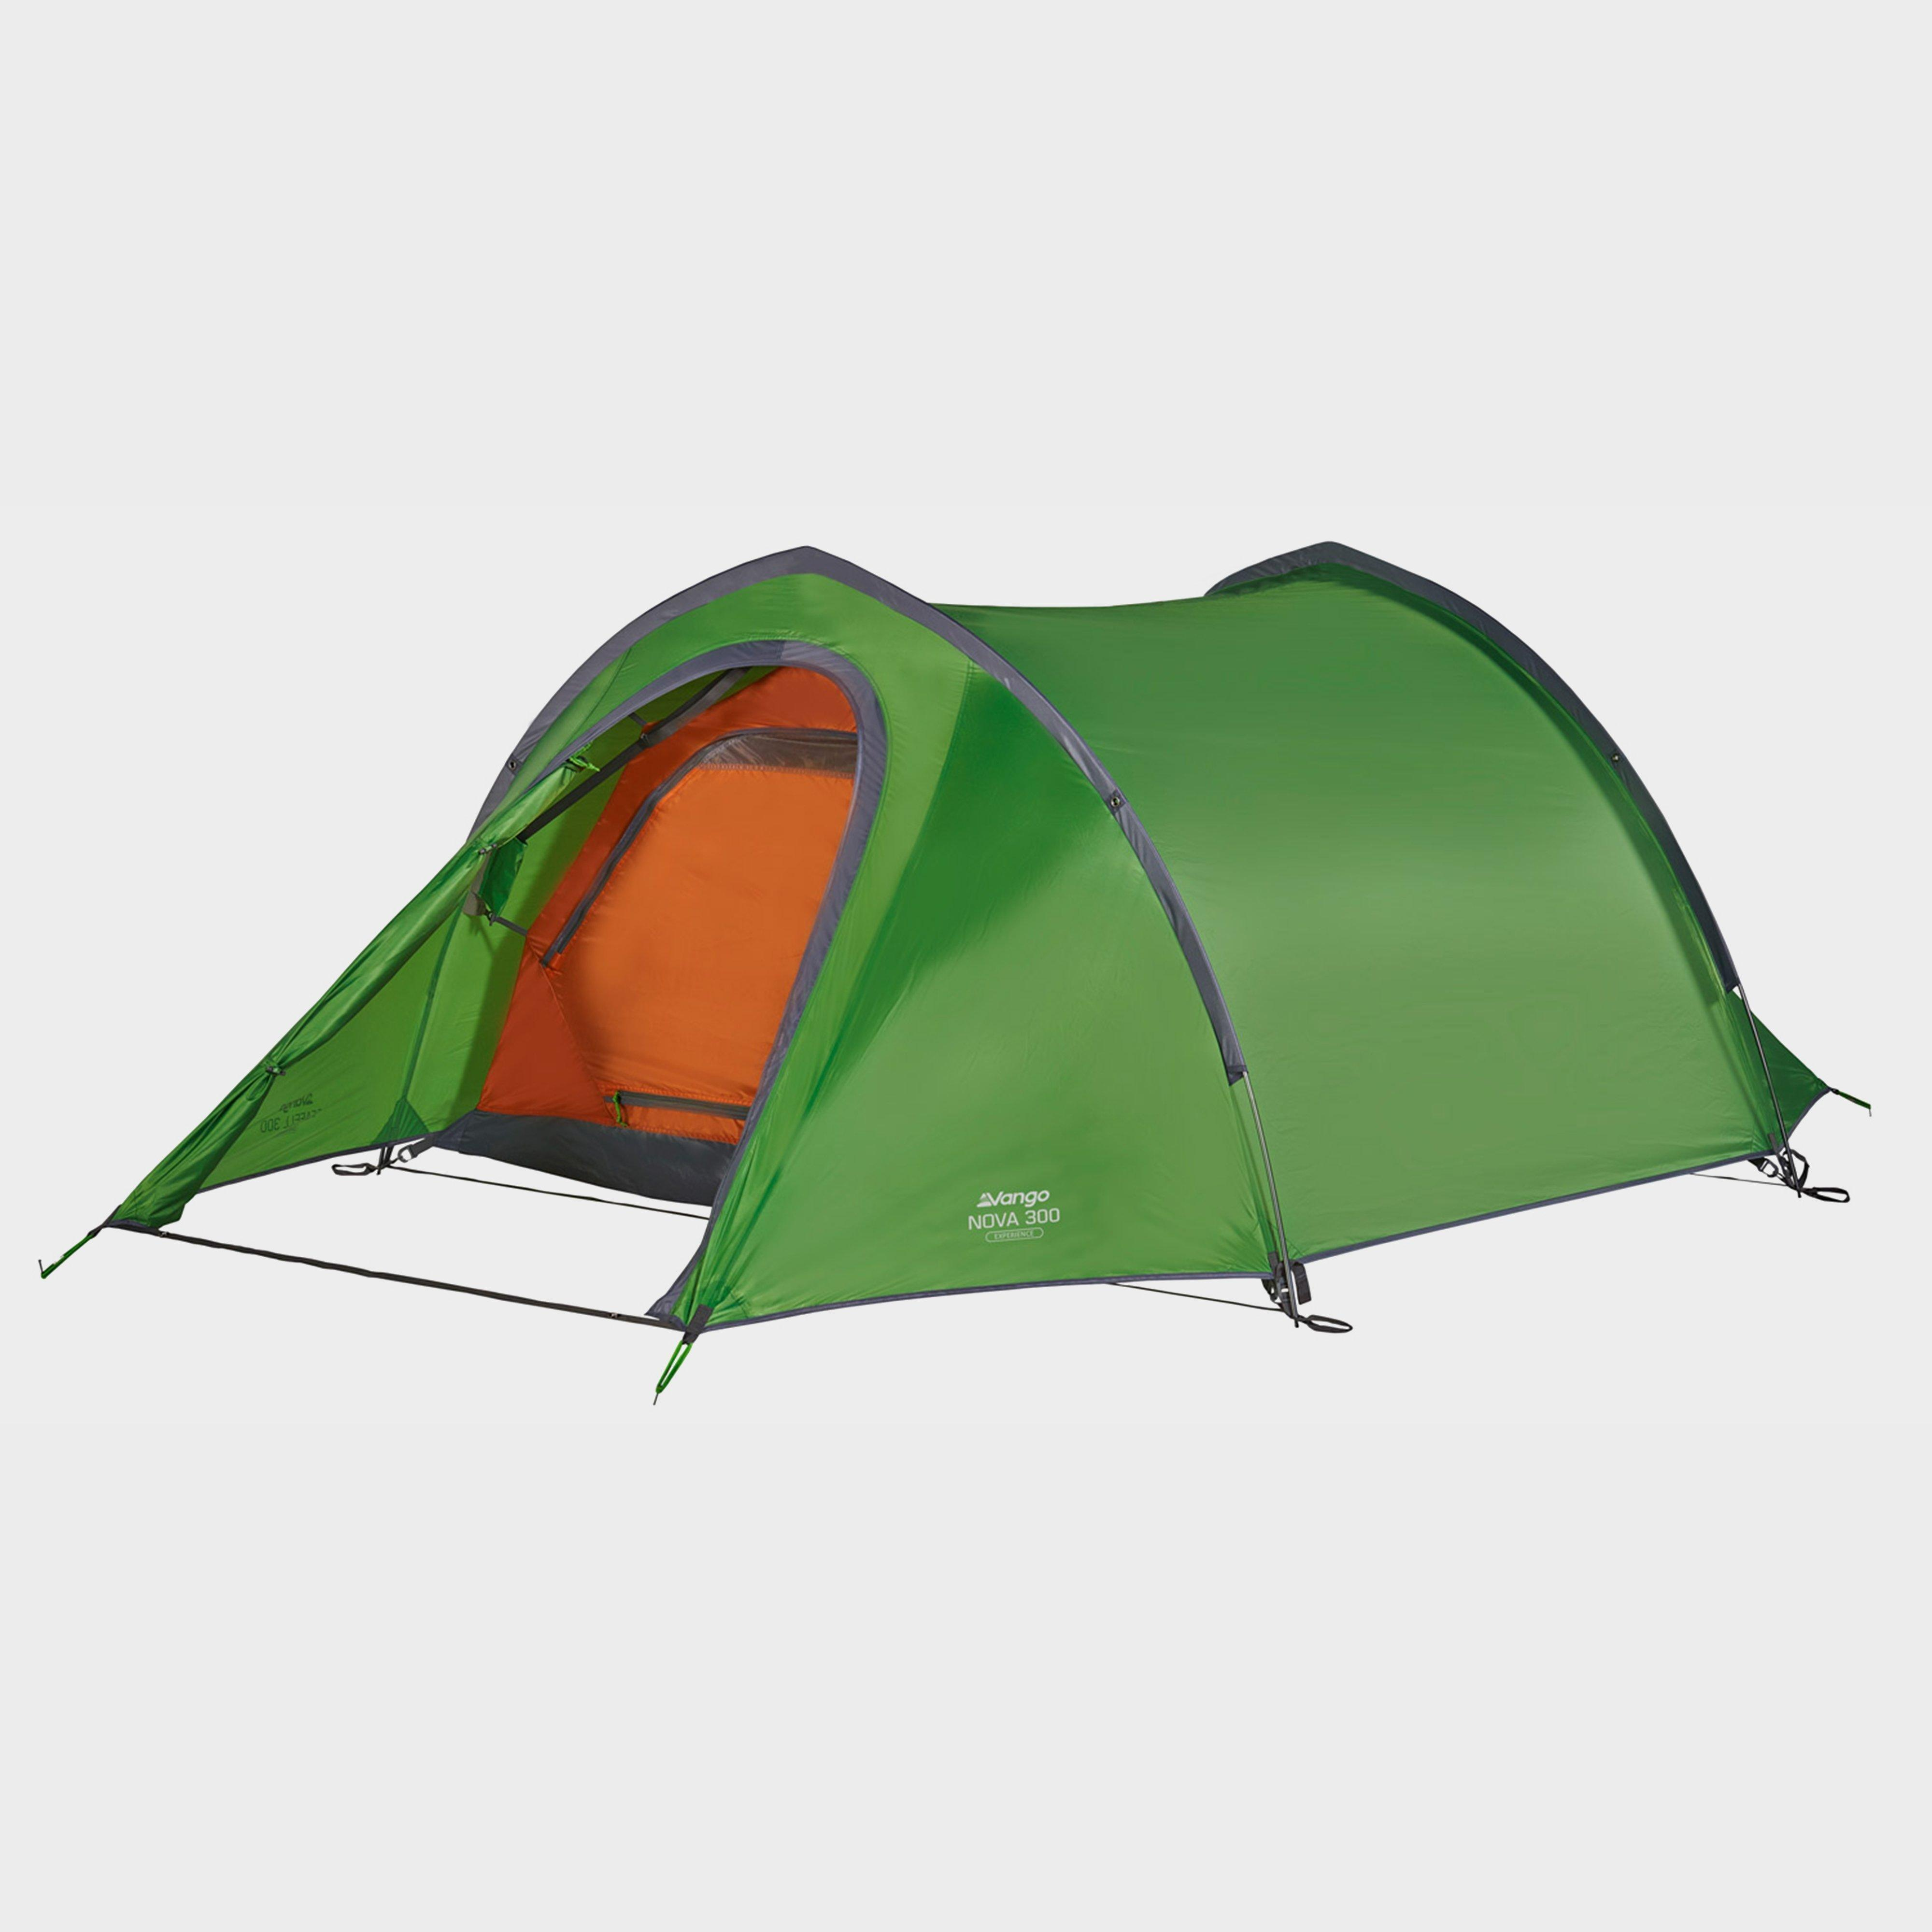 Vango Vango Nova 300 3 Person Tent - Green, Green